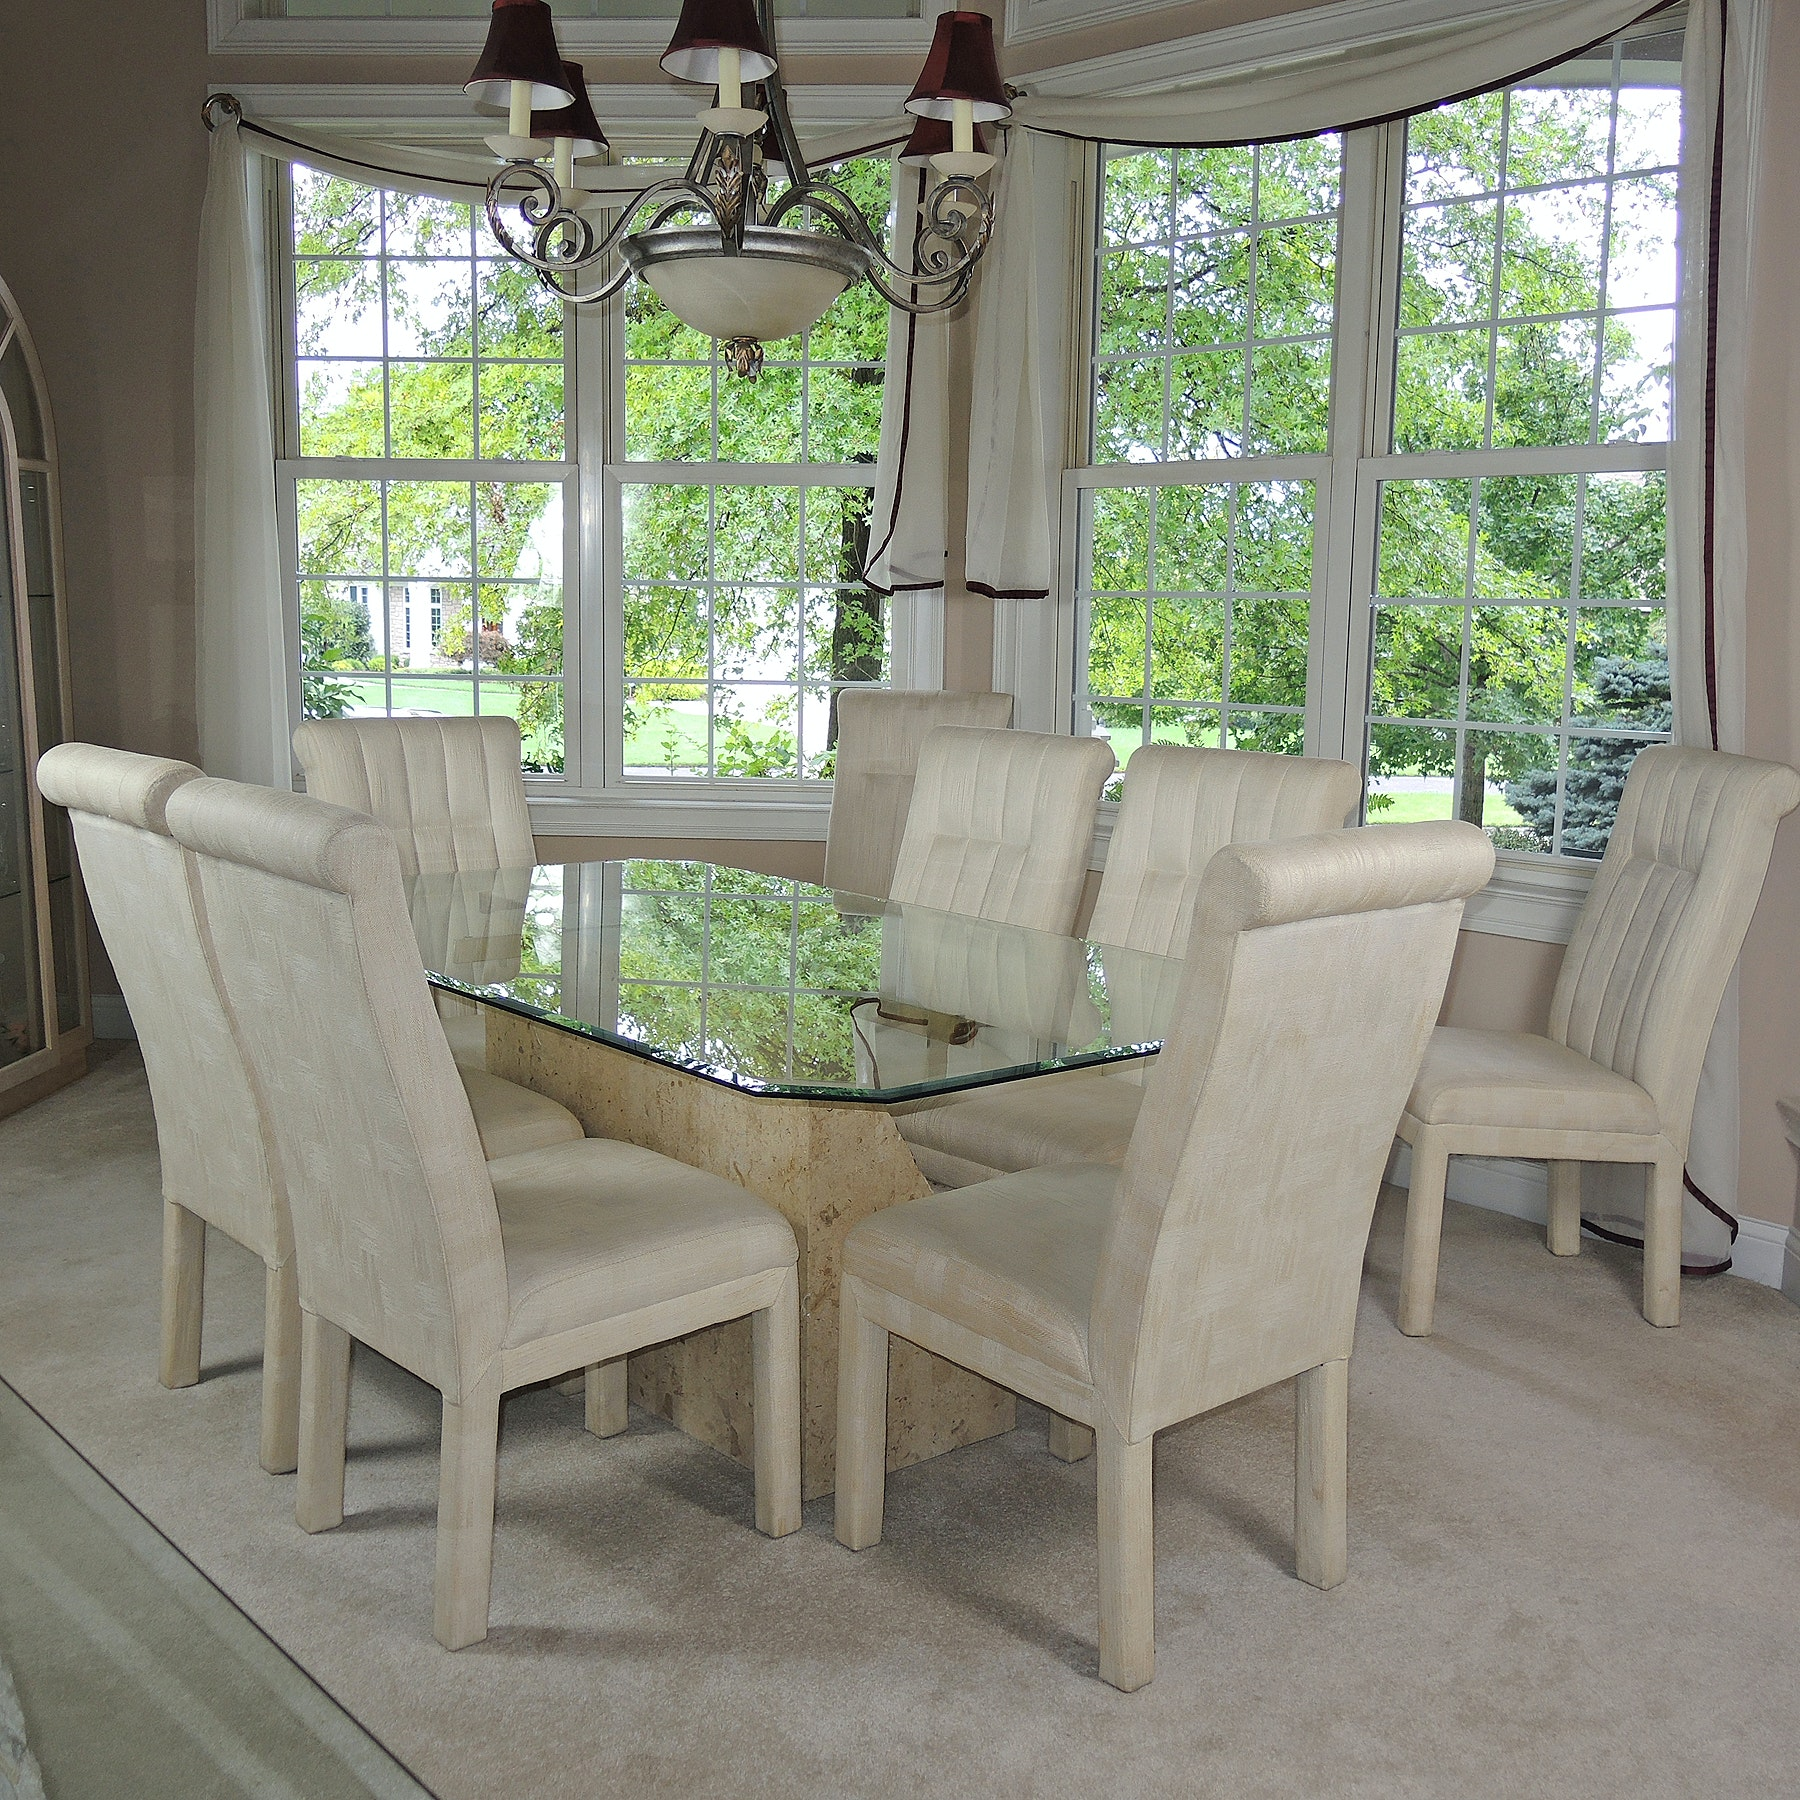 Contemporary Glass Top Table and Chairs